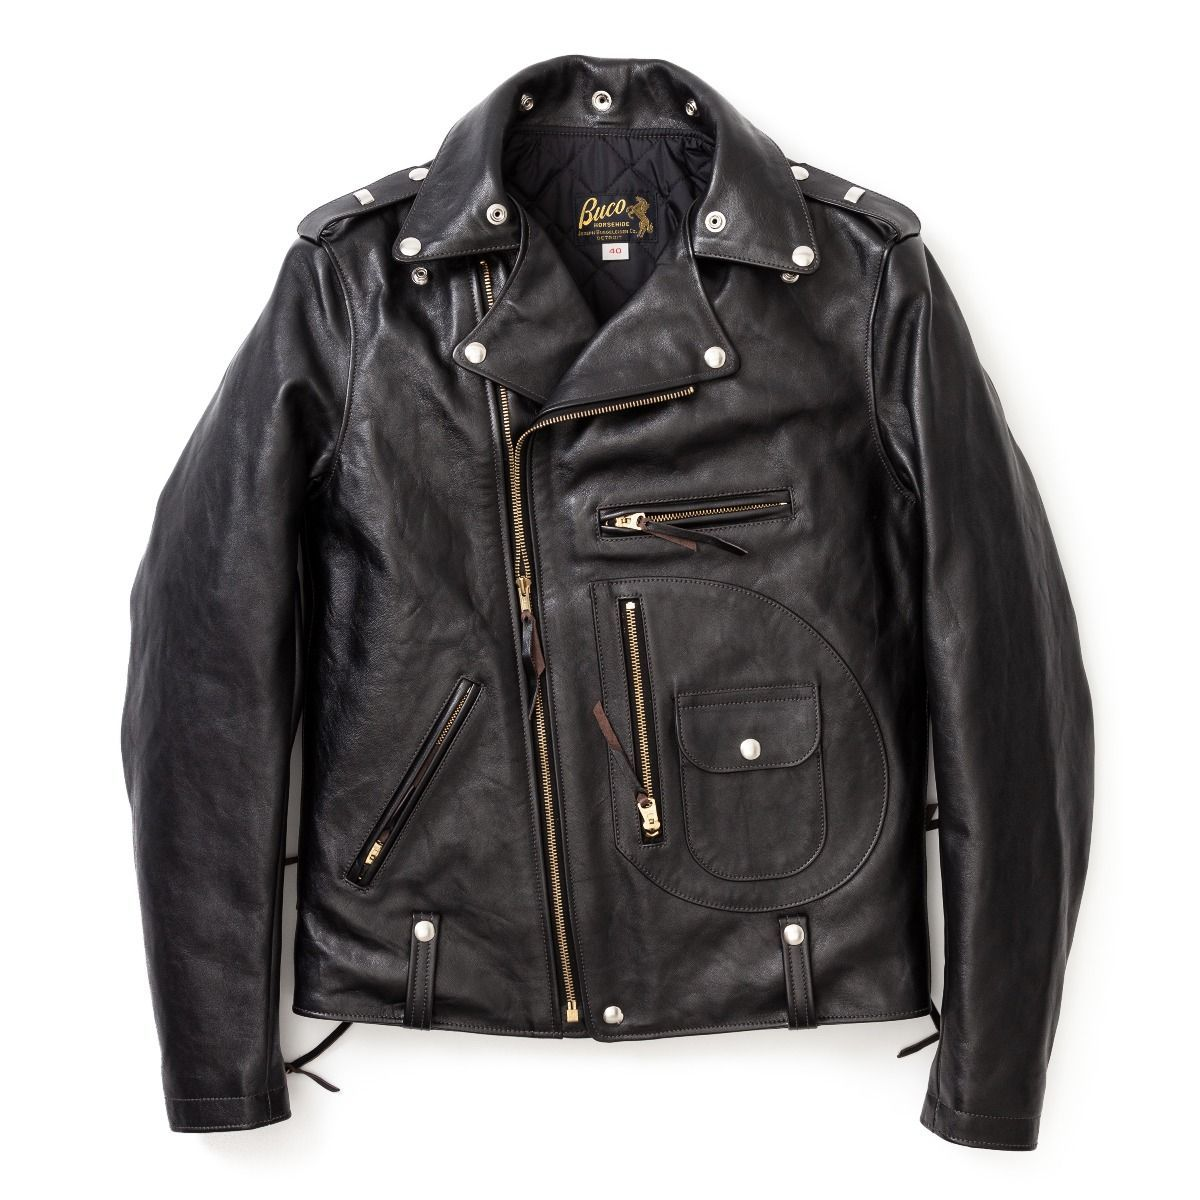 P The J 24l Is A Longer Length Version Of The J 24 The Standard Double Riders Jacket From Buco V Stylish Jackets Leather Jacket Men Style Leather Jacket Men [ 1200 x 1200 Pixel ]